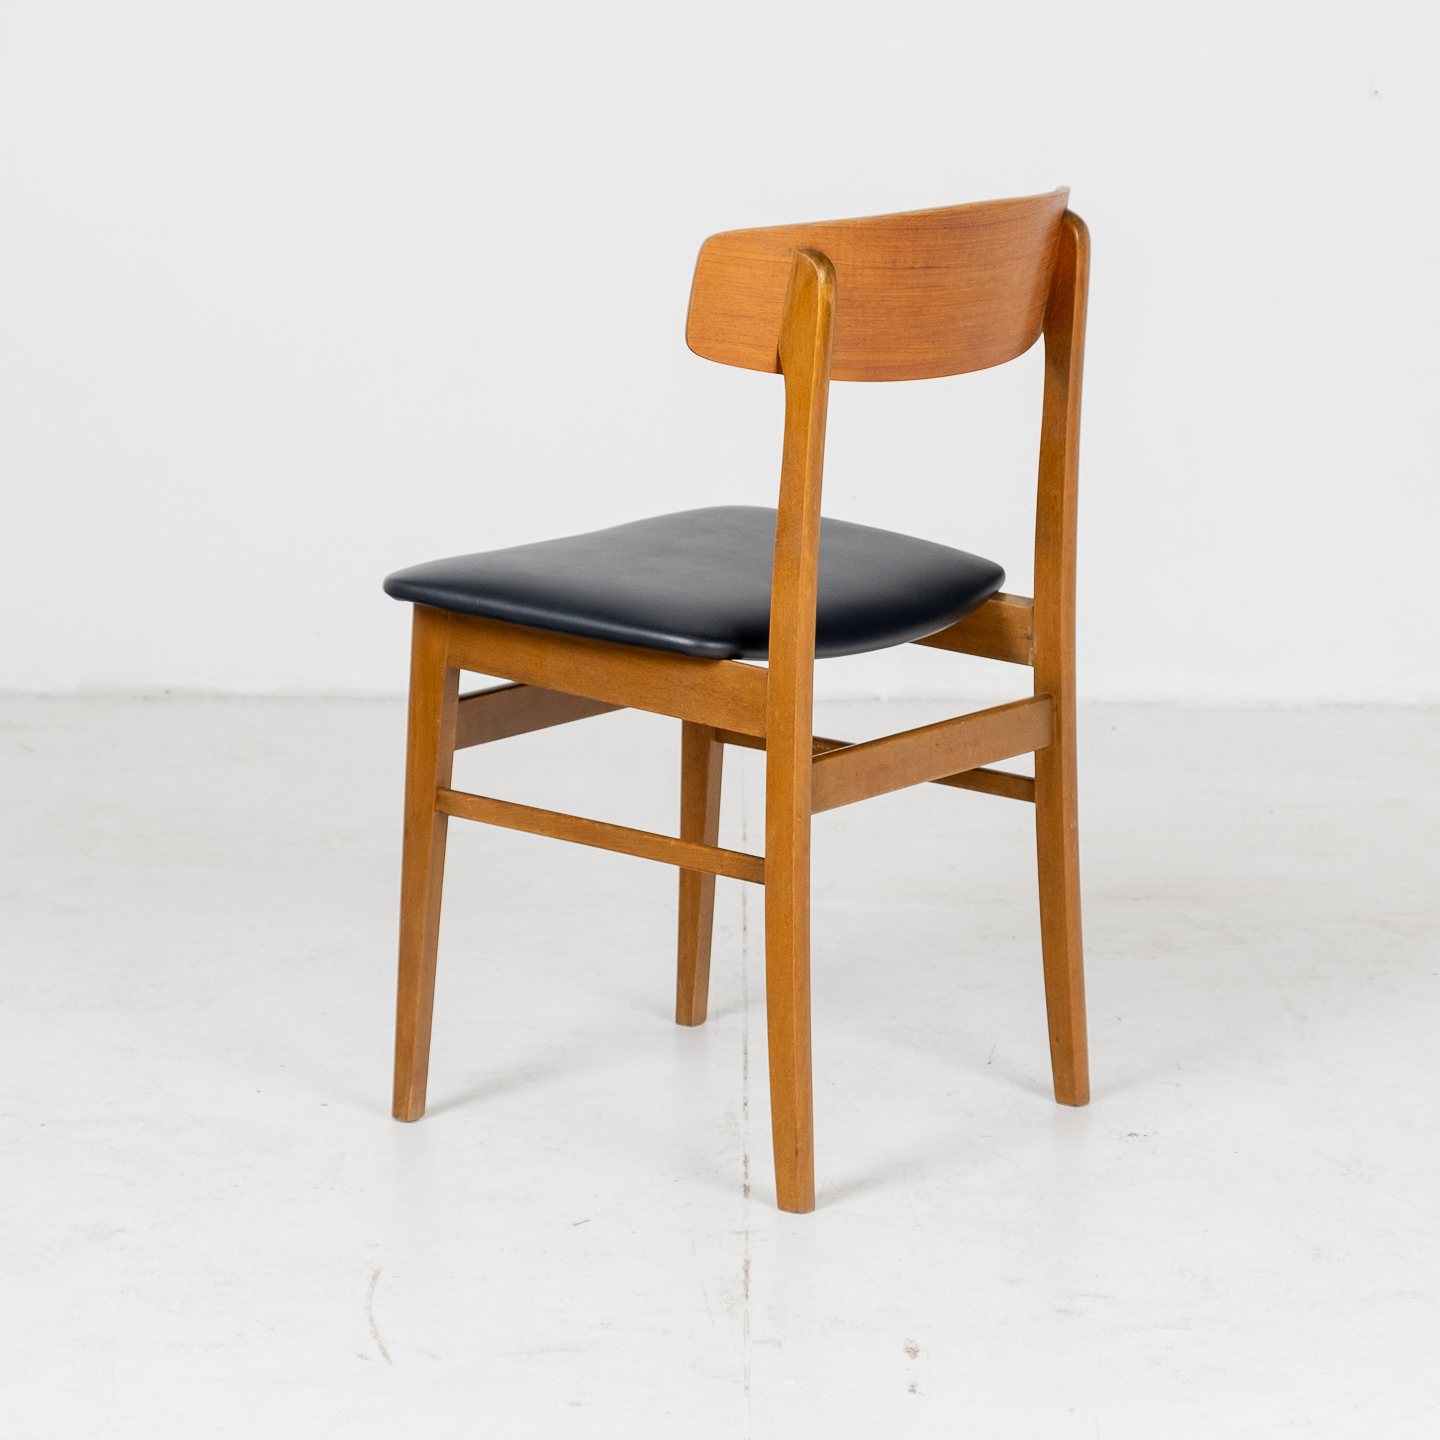 Set Of Four Square Back Dining Chairs By Fastrup In Teak, 1960s, Denmark03